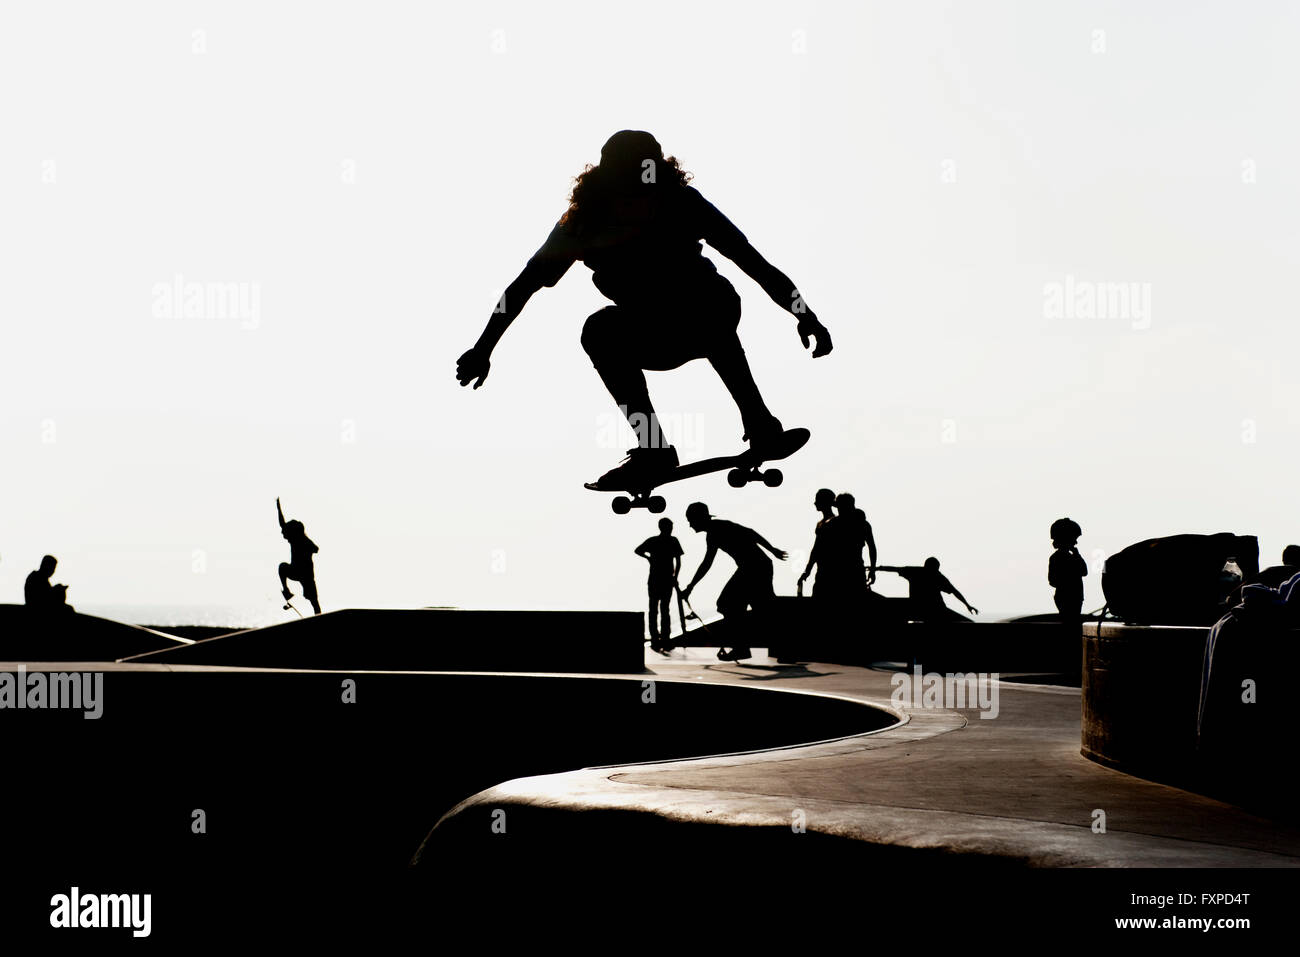 Skateboarder at skate park, silhouetted Stock Photo